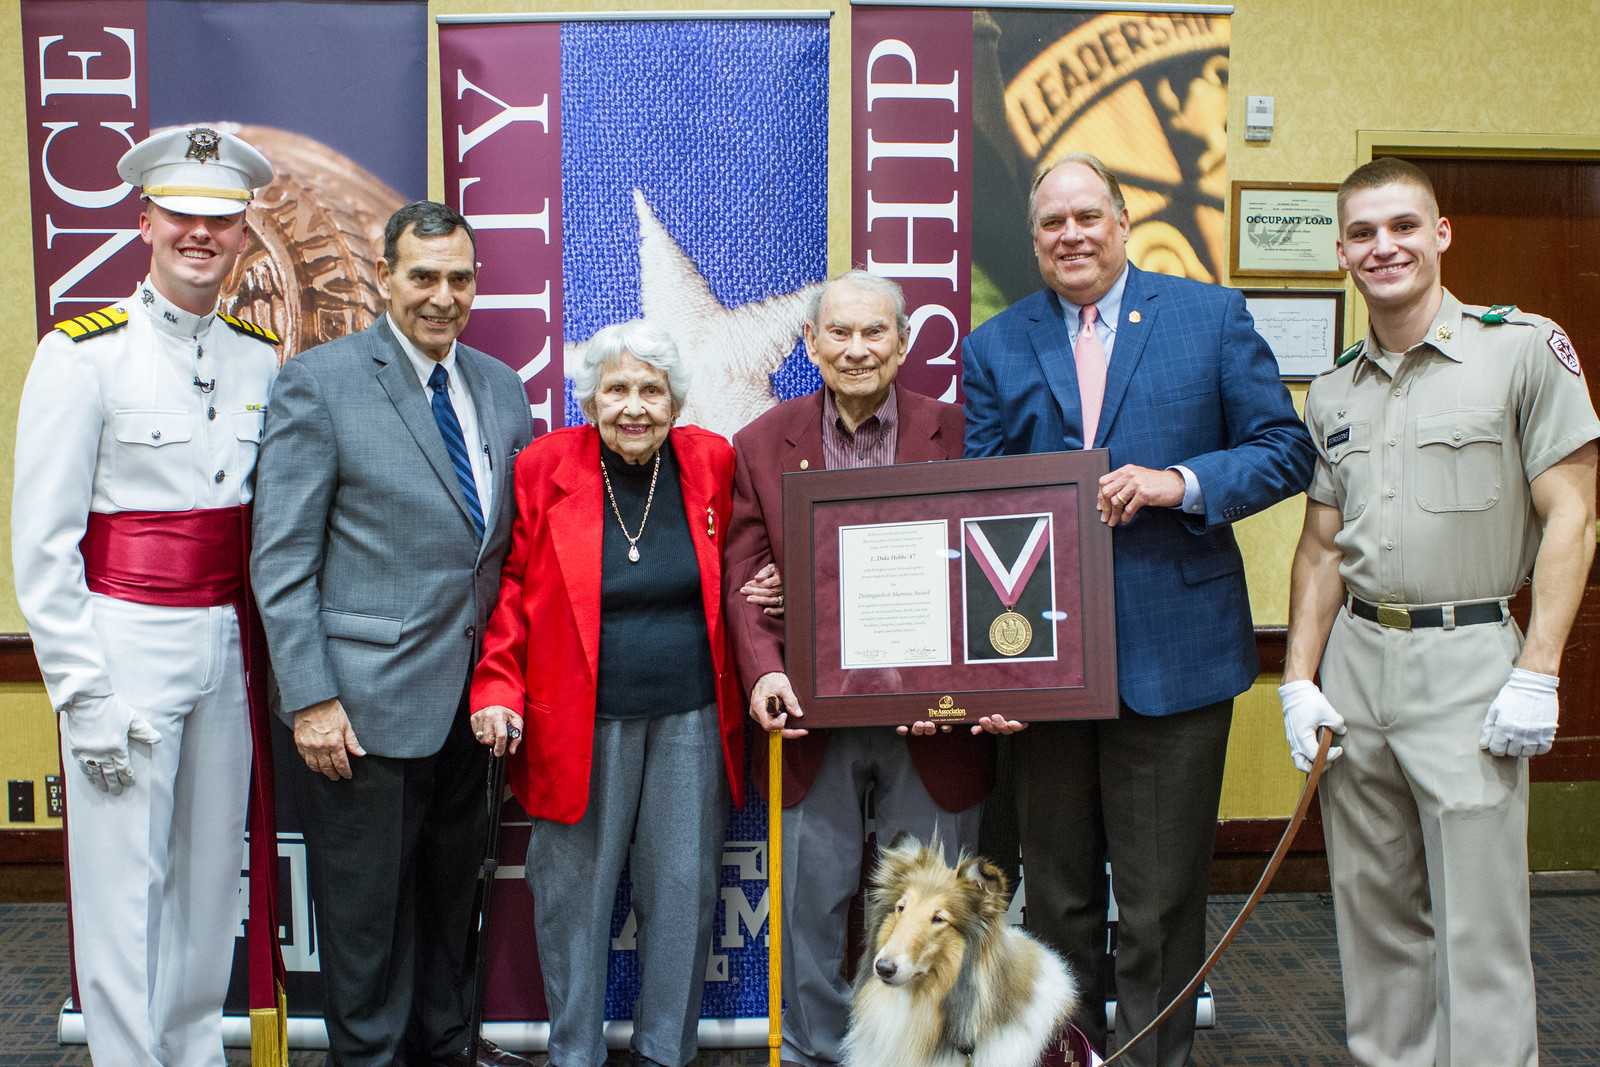 4 Brazos County Aggies among A&M 2018 Distinguished Alumni